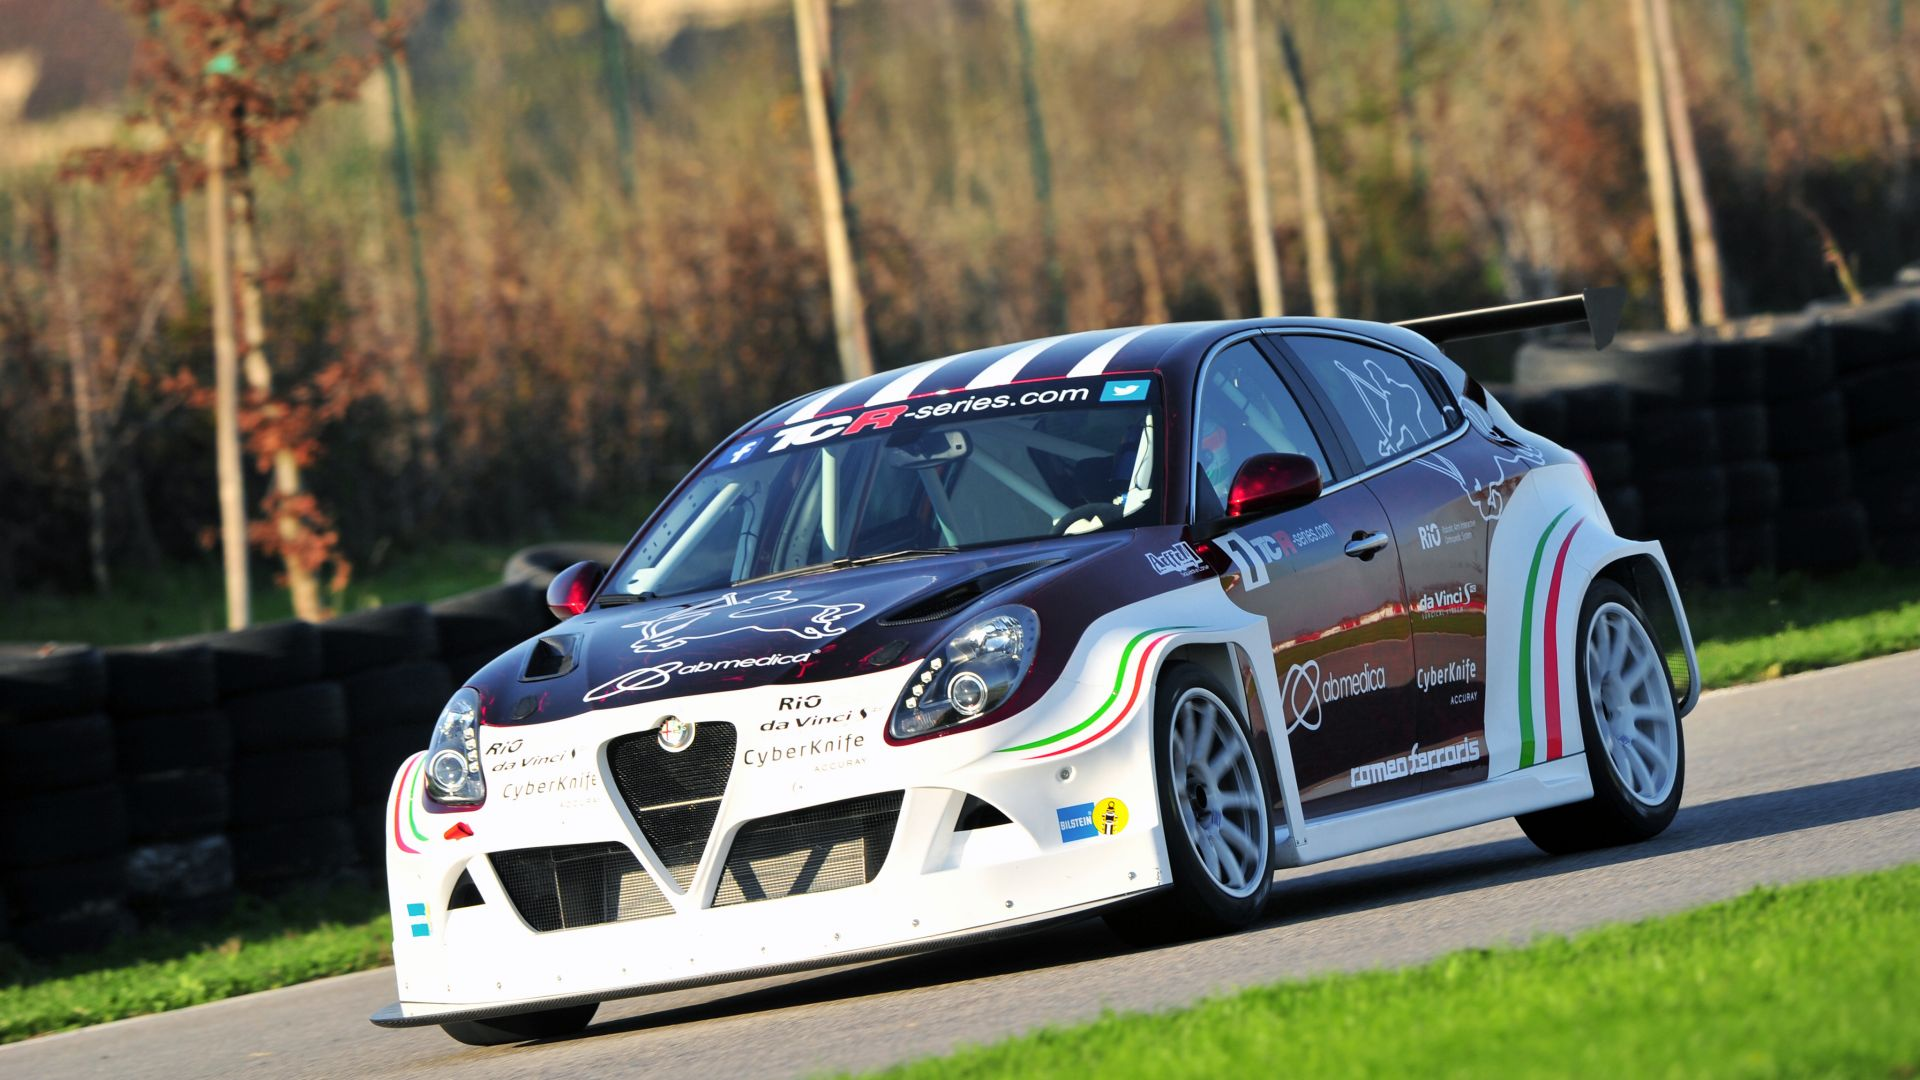 Romeo Ferraris, Alfa Romeo Giulietta TCR, sport cars, TCR International Series, test (horizontal)